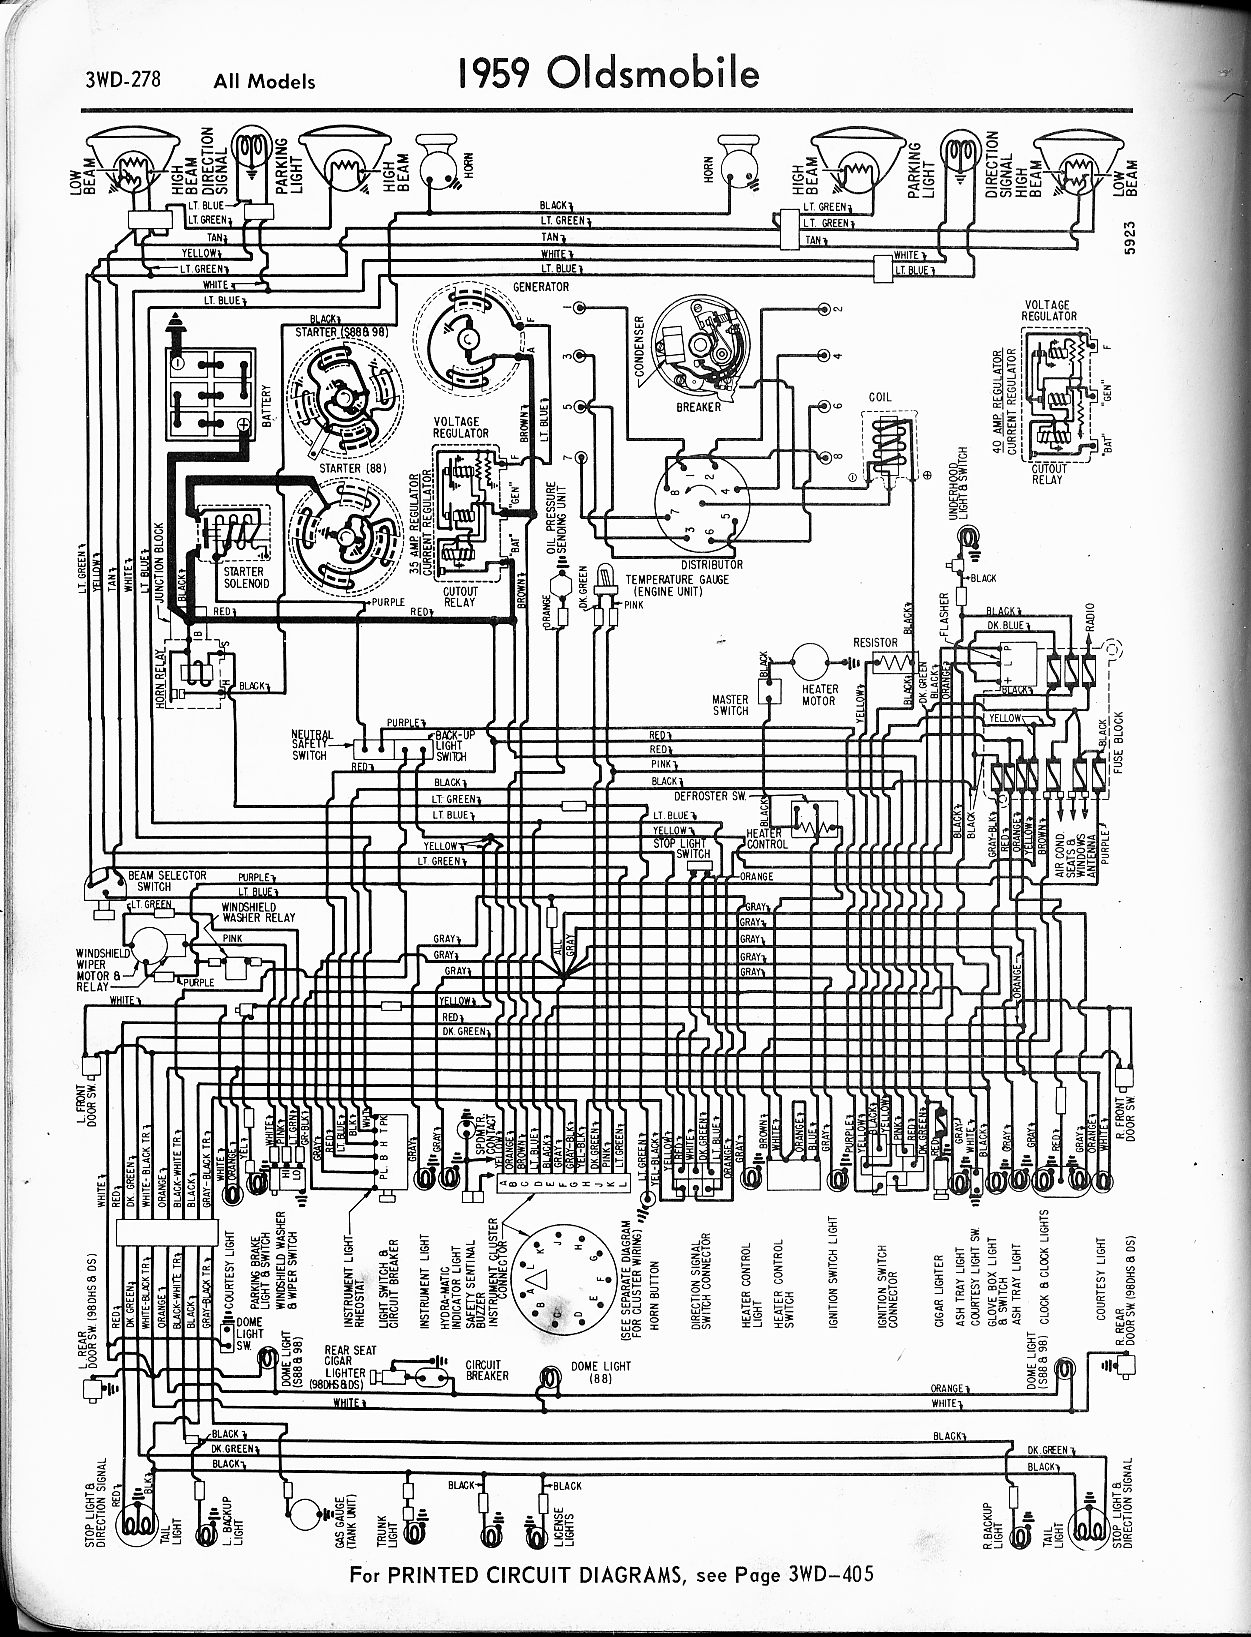 MWire5765 278 oldsmobile wiring diagrams the old car manual project Basic Turn Signal Wiring Diagram at crackthecode.co